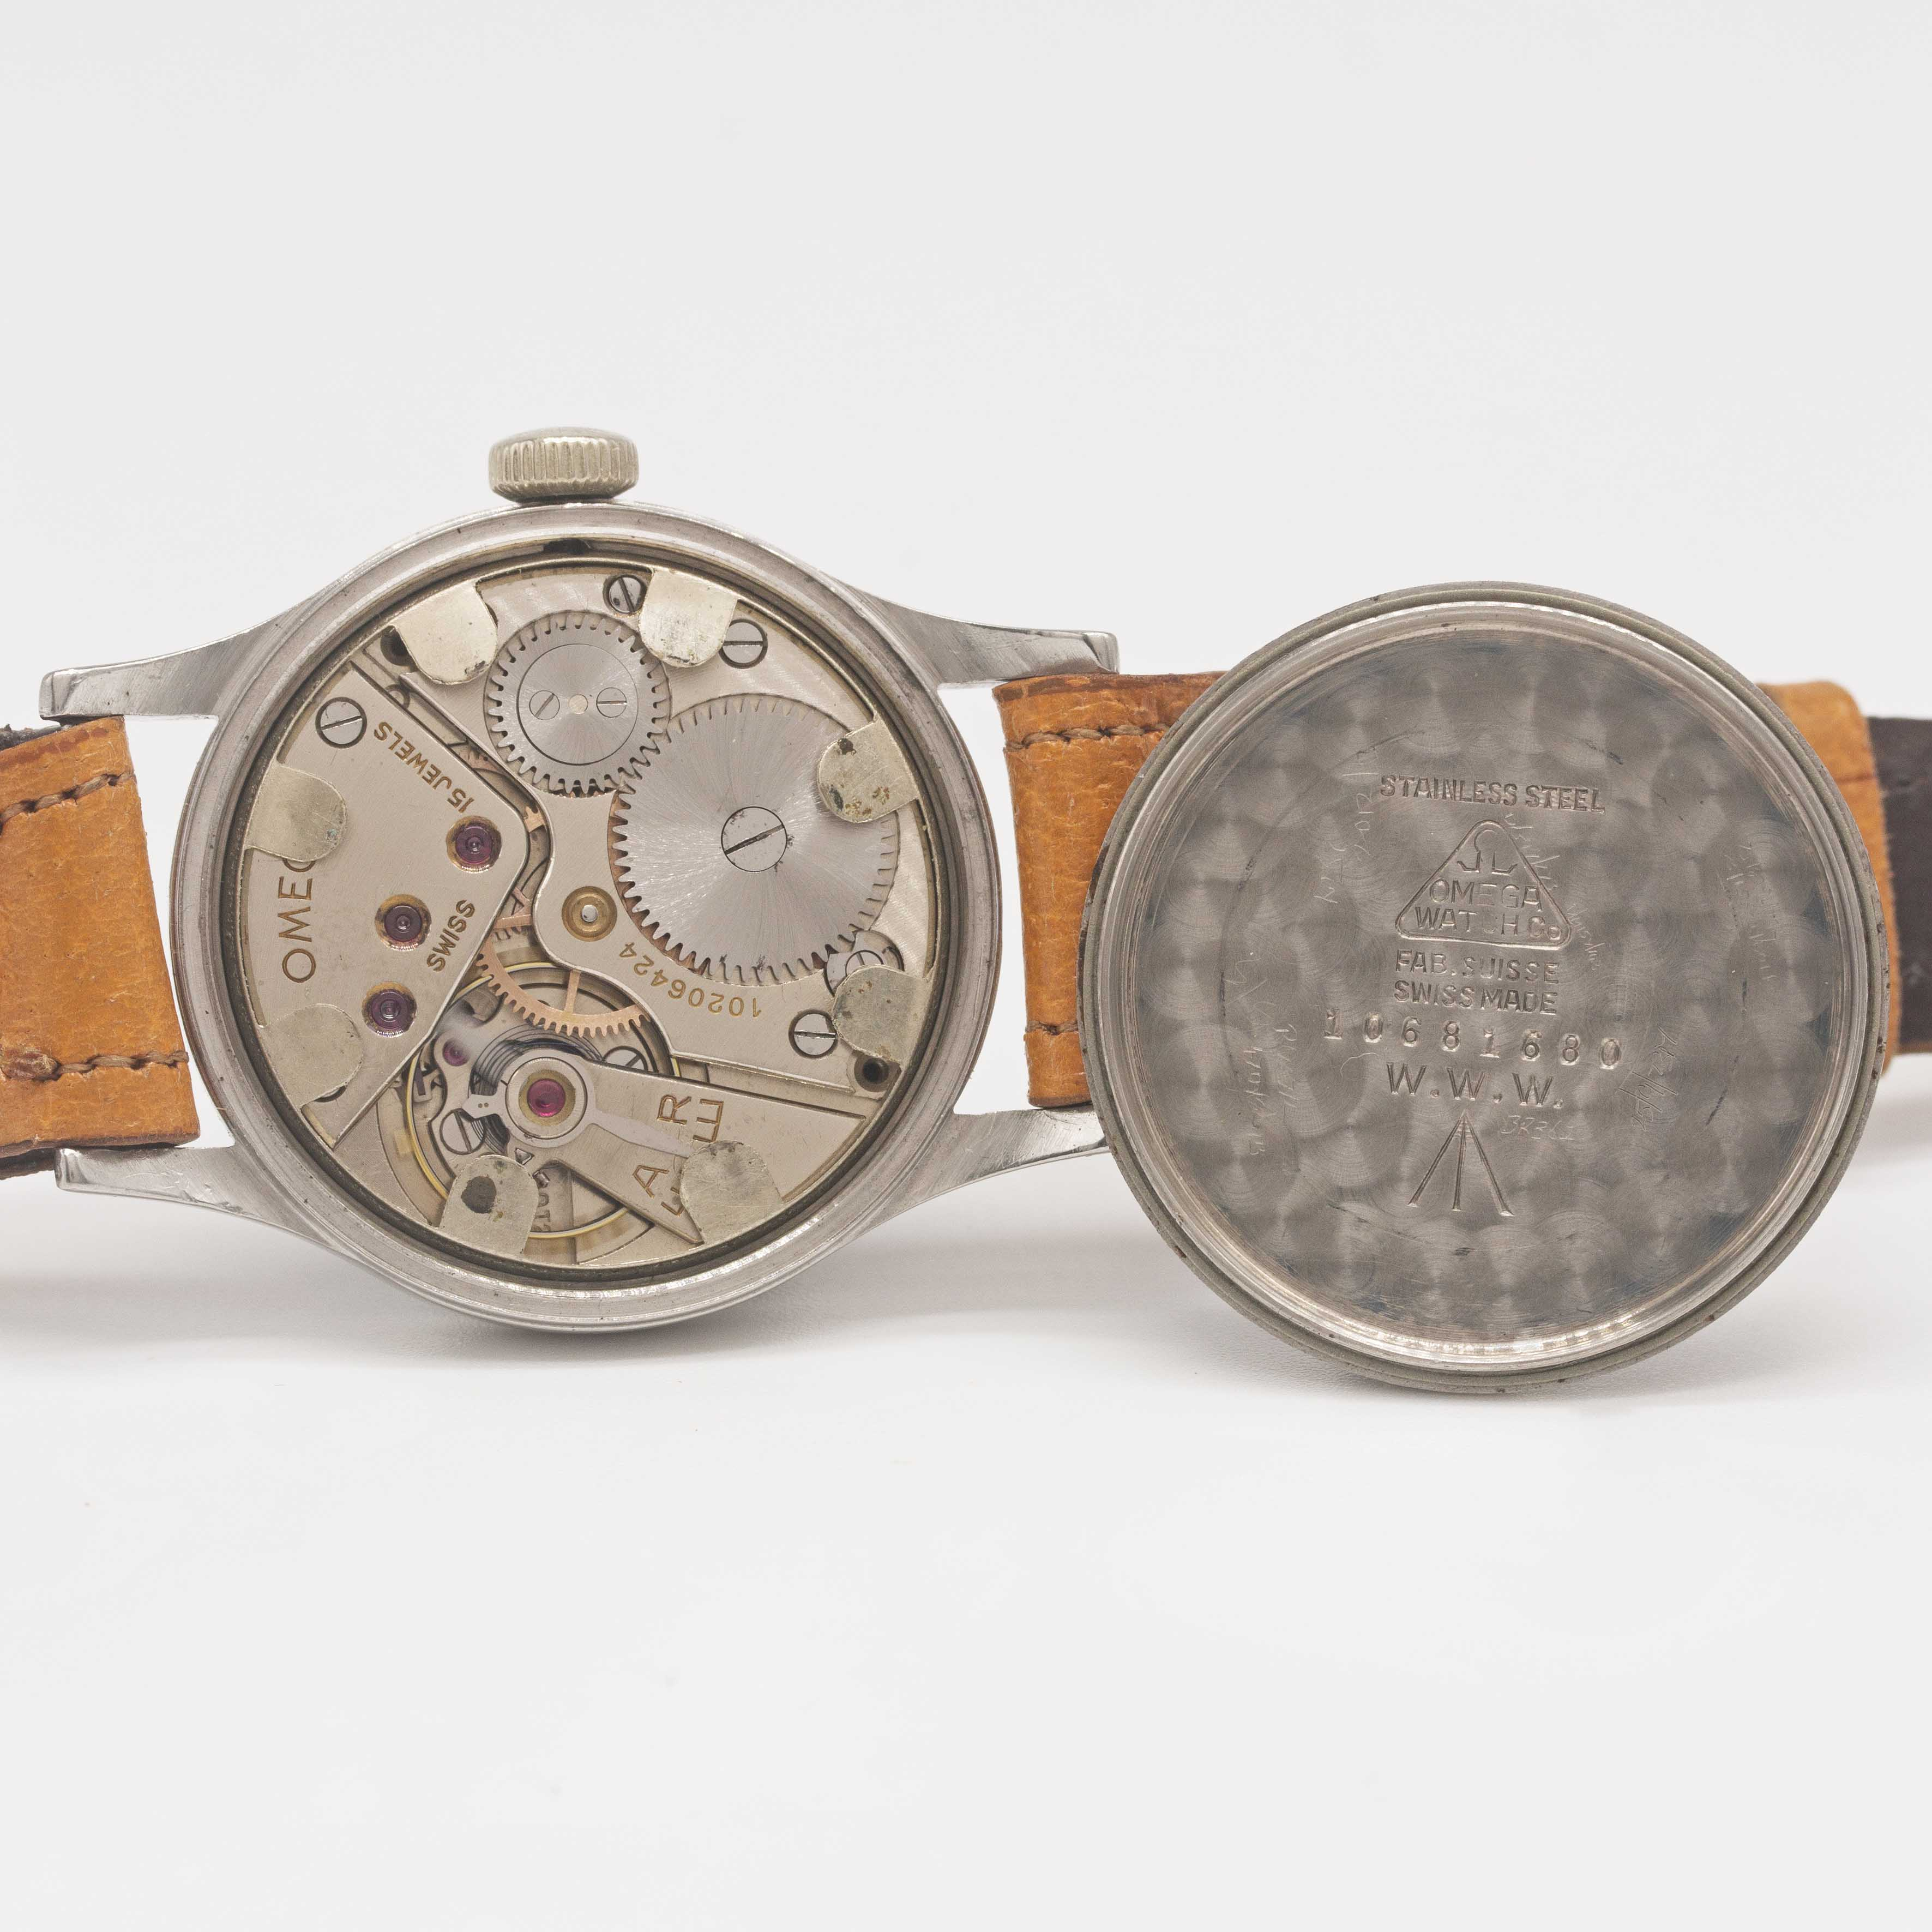 Lot 31 - A GENTLEMAN'S STAINLESS STEEL BRITISH MILITARY OMEGA W.W.W. WRIST WATCH CIRCA 1945, PART OF THE ""